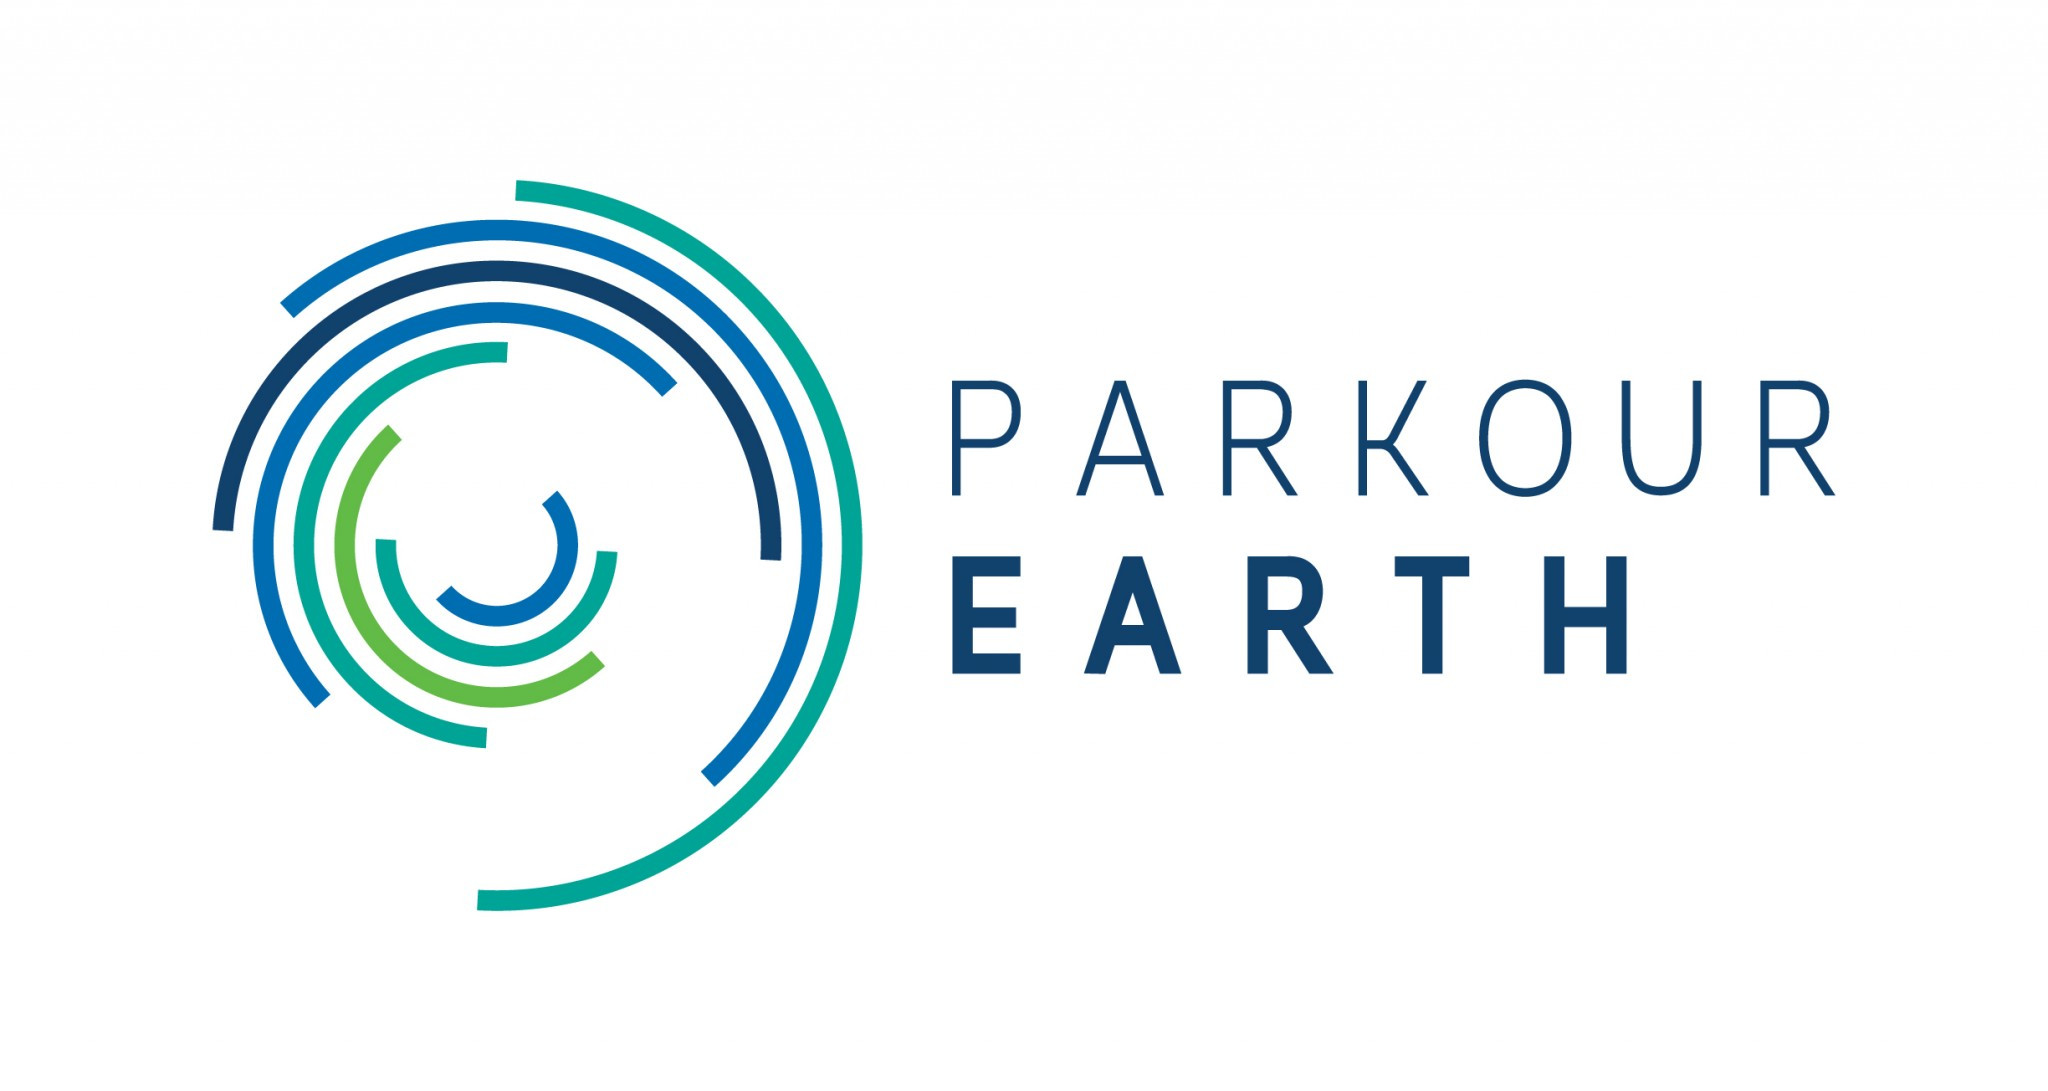 Parkour Earth has today been officially established as the International Federation for the sport as the ongoing row with the International Gymnastics Federation continues ©Parkour Earth